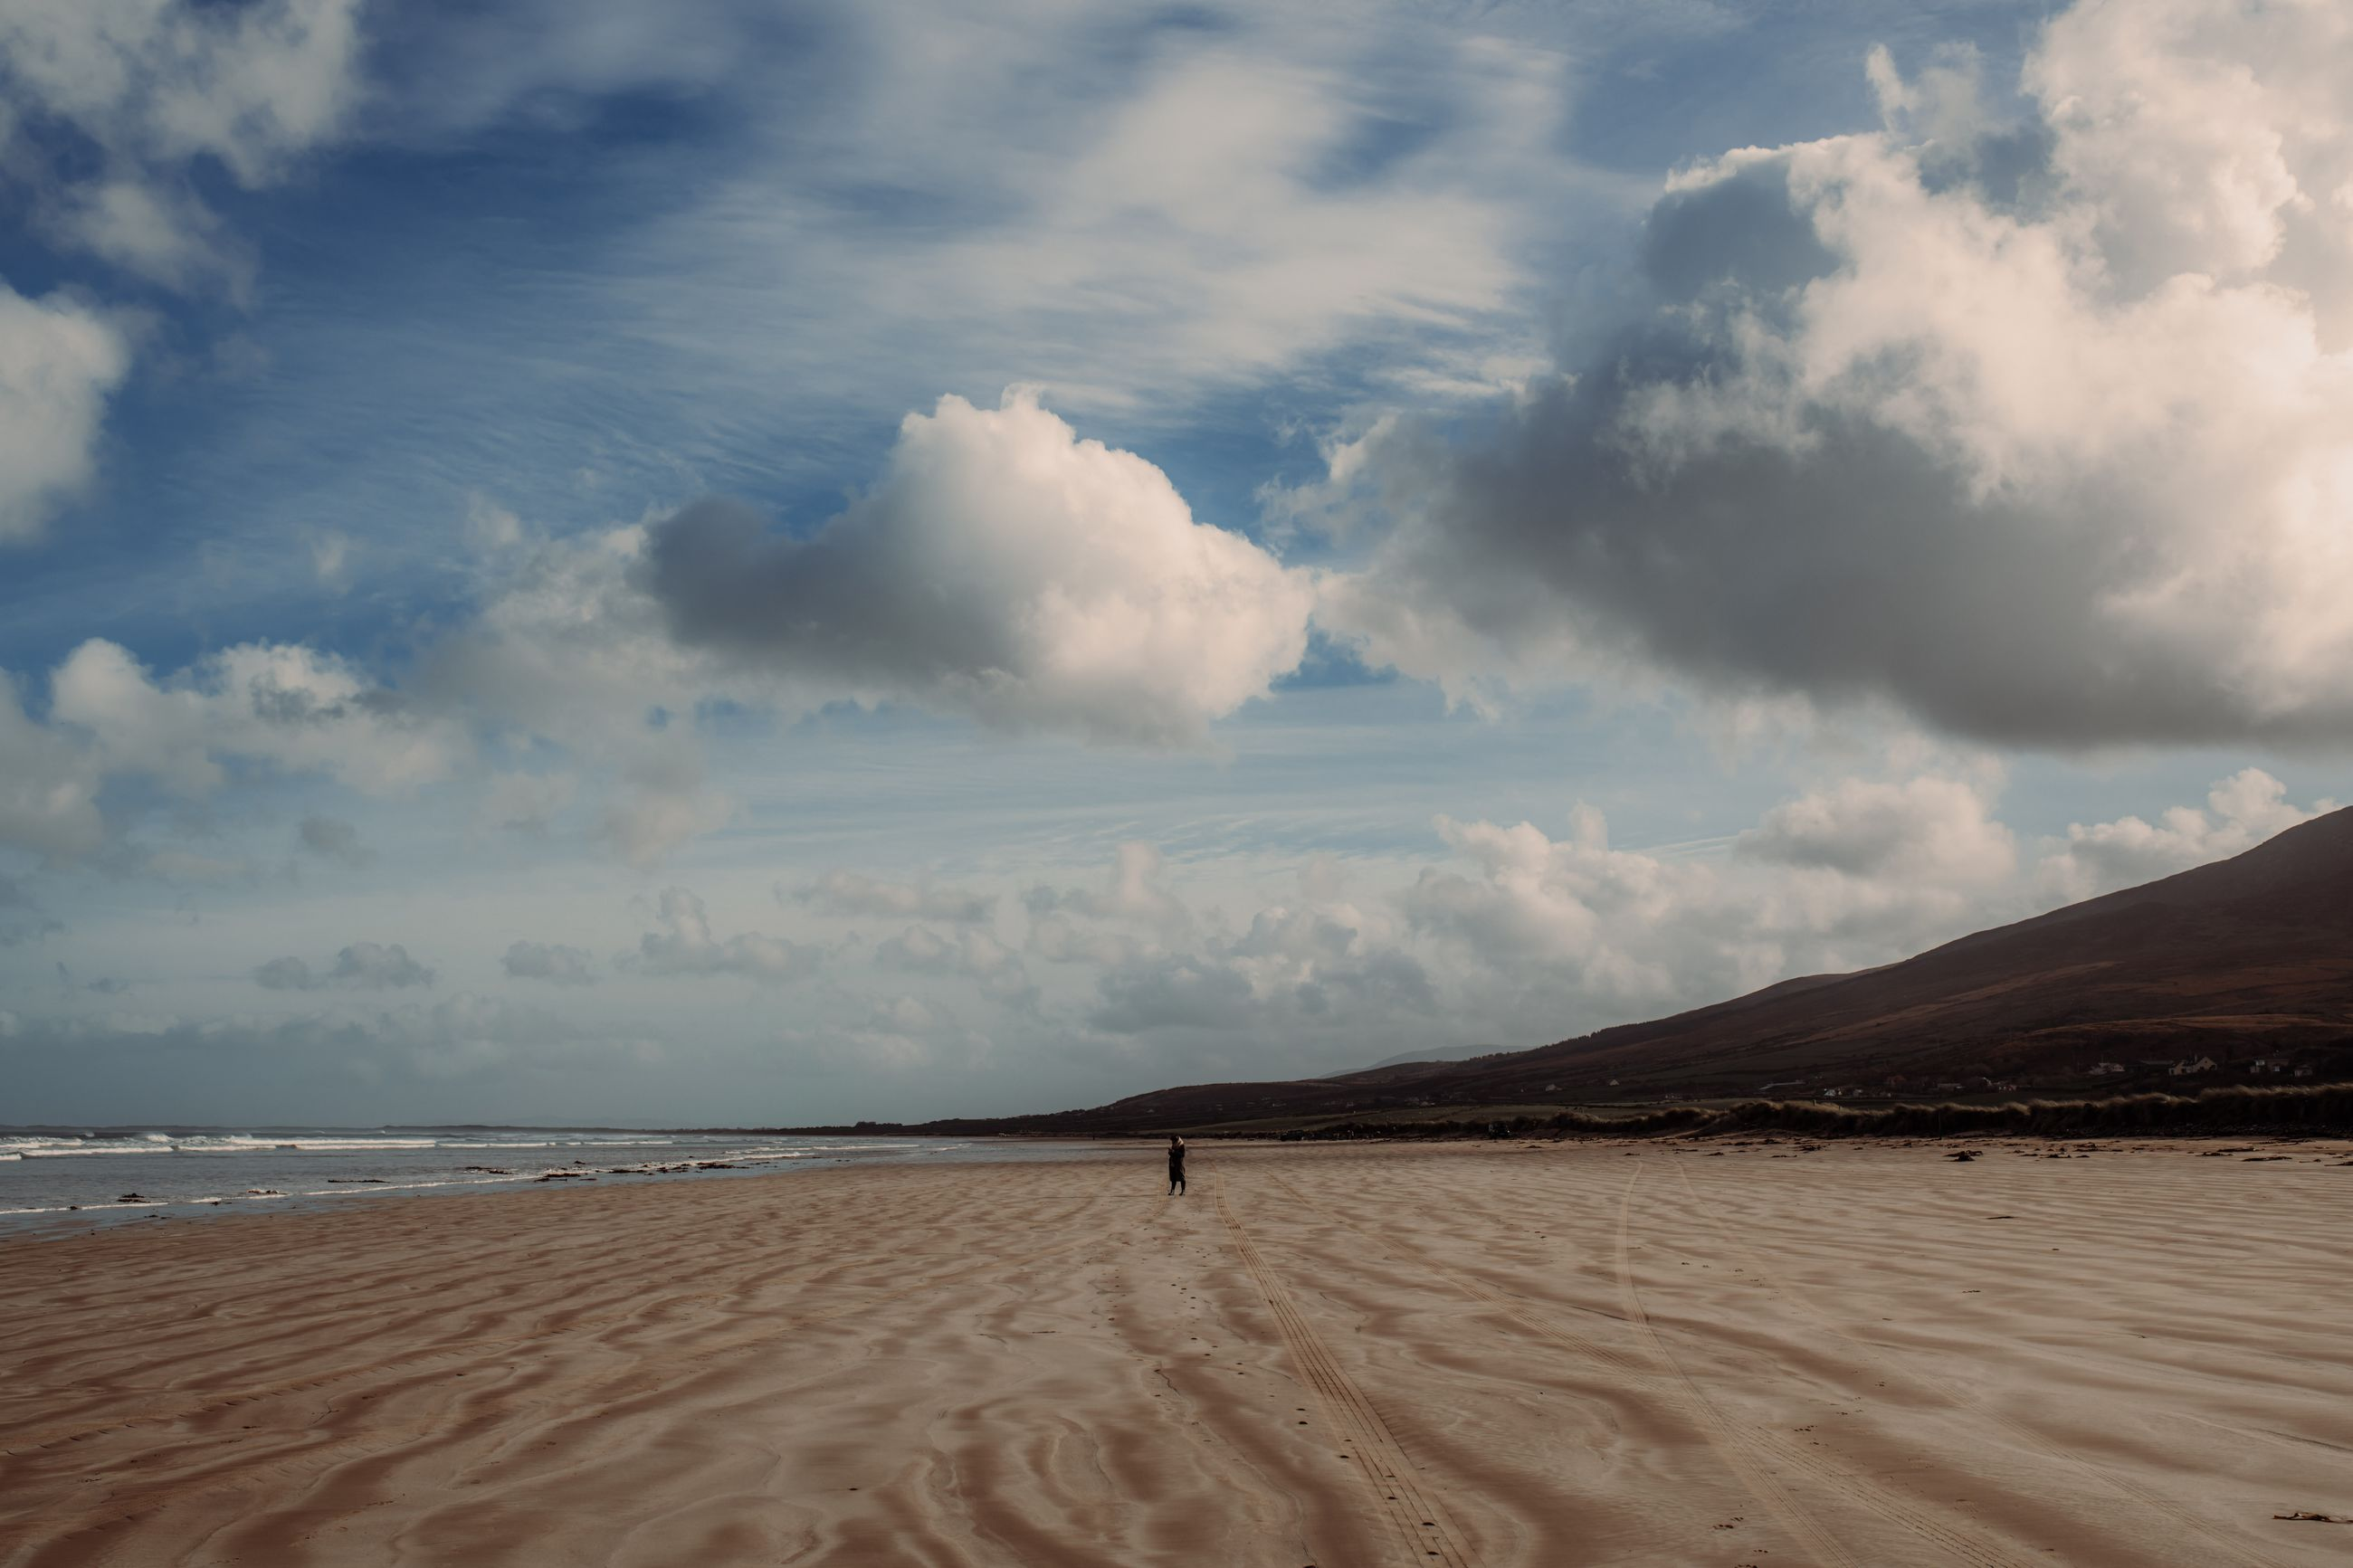 cloud - sky, sky, scenics - nature, beauty in nature, land, sand, tranquility, tranquil scene, non-urban scene, beach, nature, water, sea, desert, landscape, environment, no people, day, idyllic, outdoors, climate, arid climate